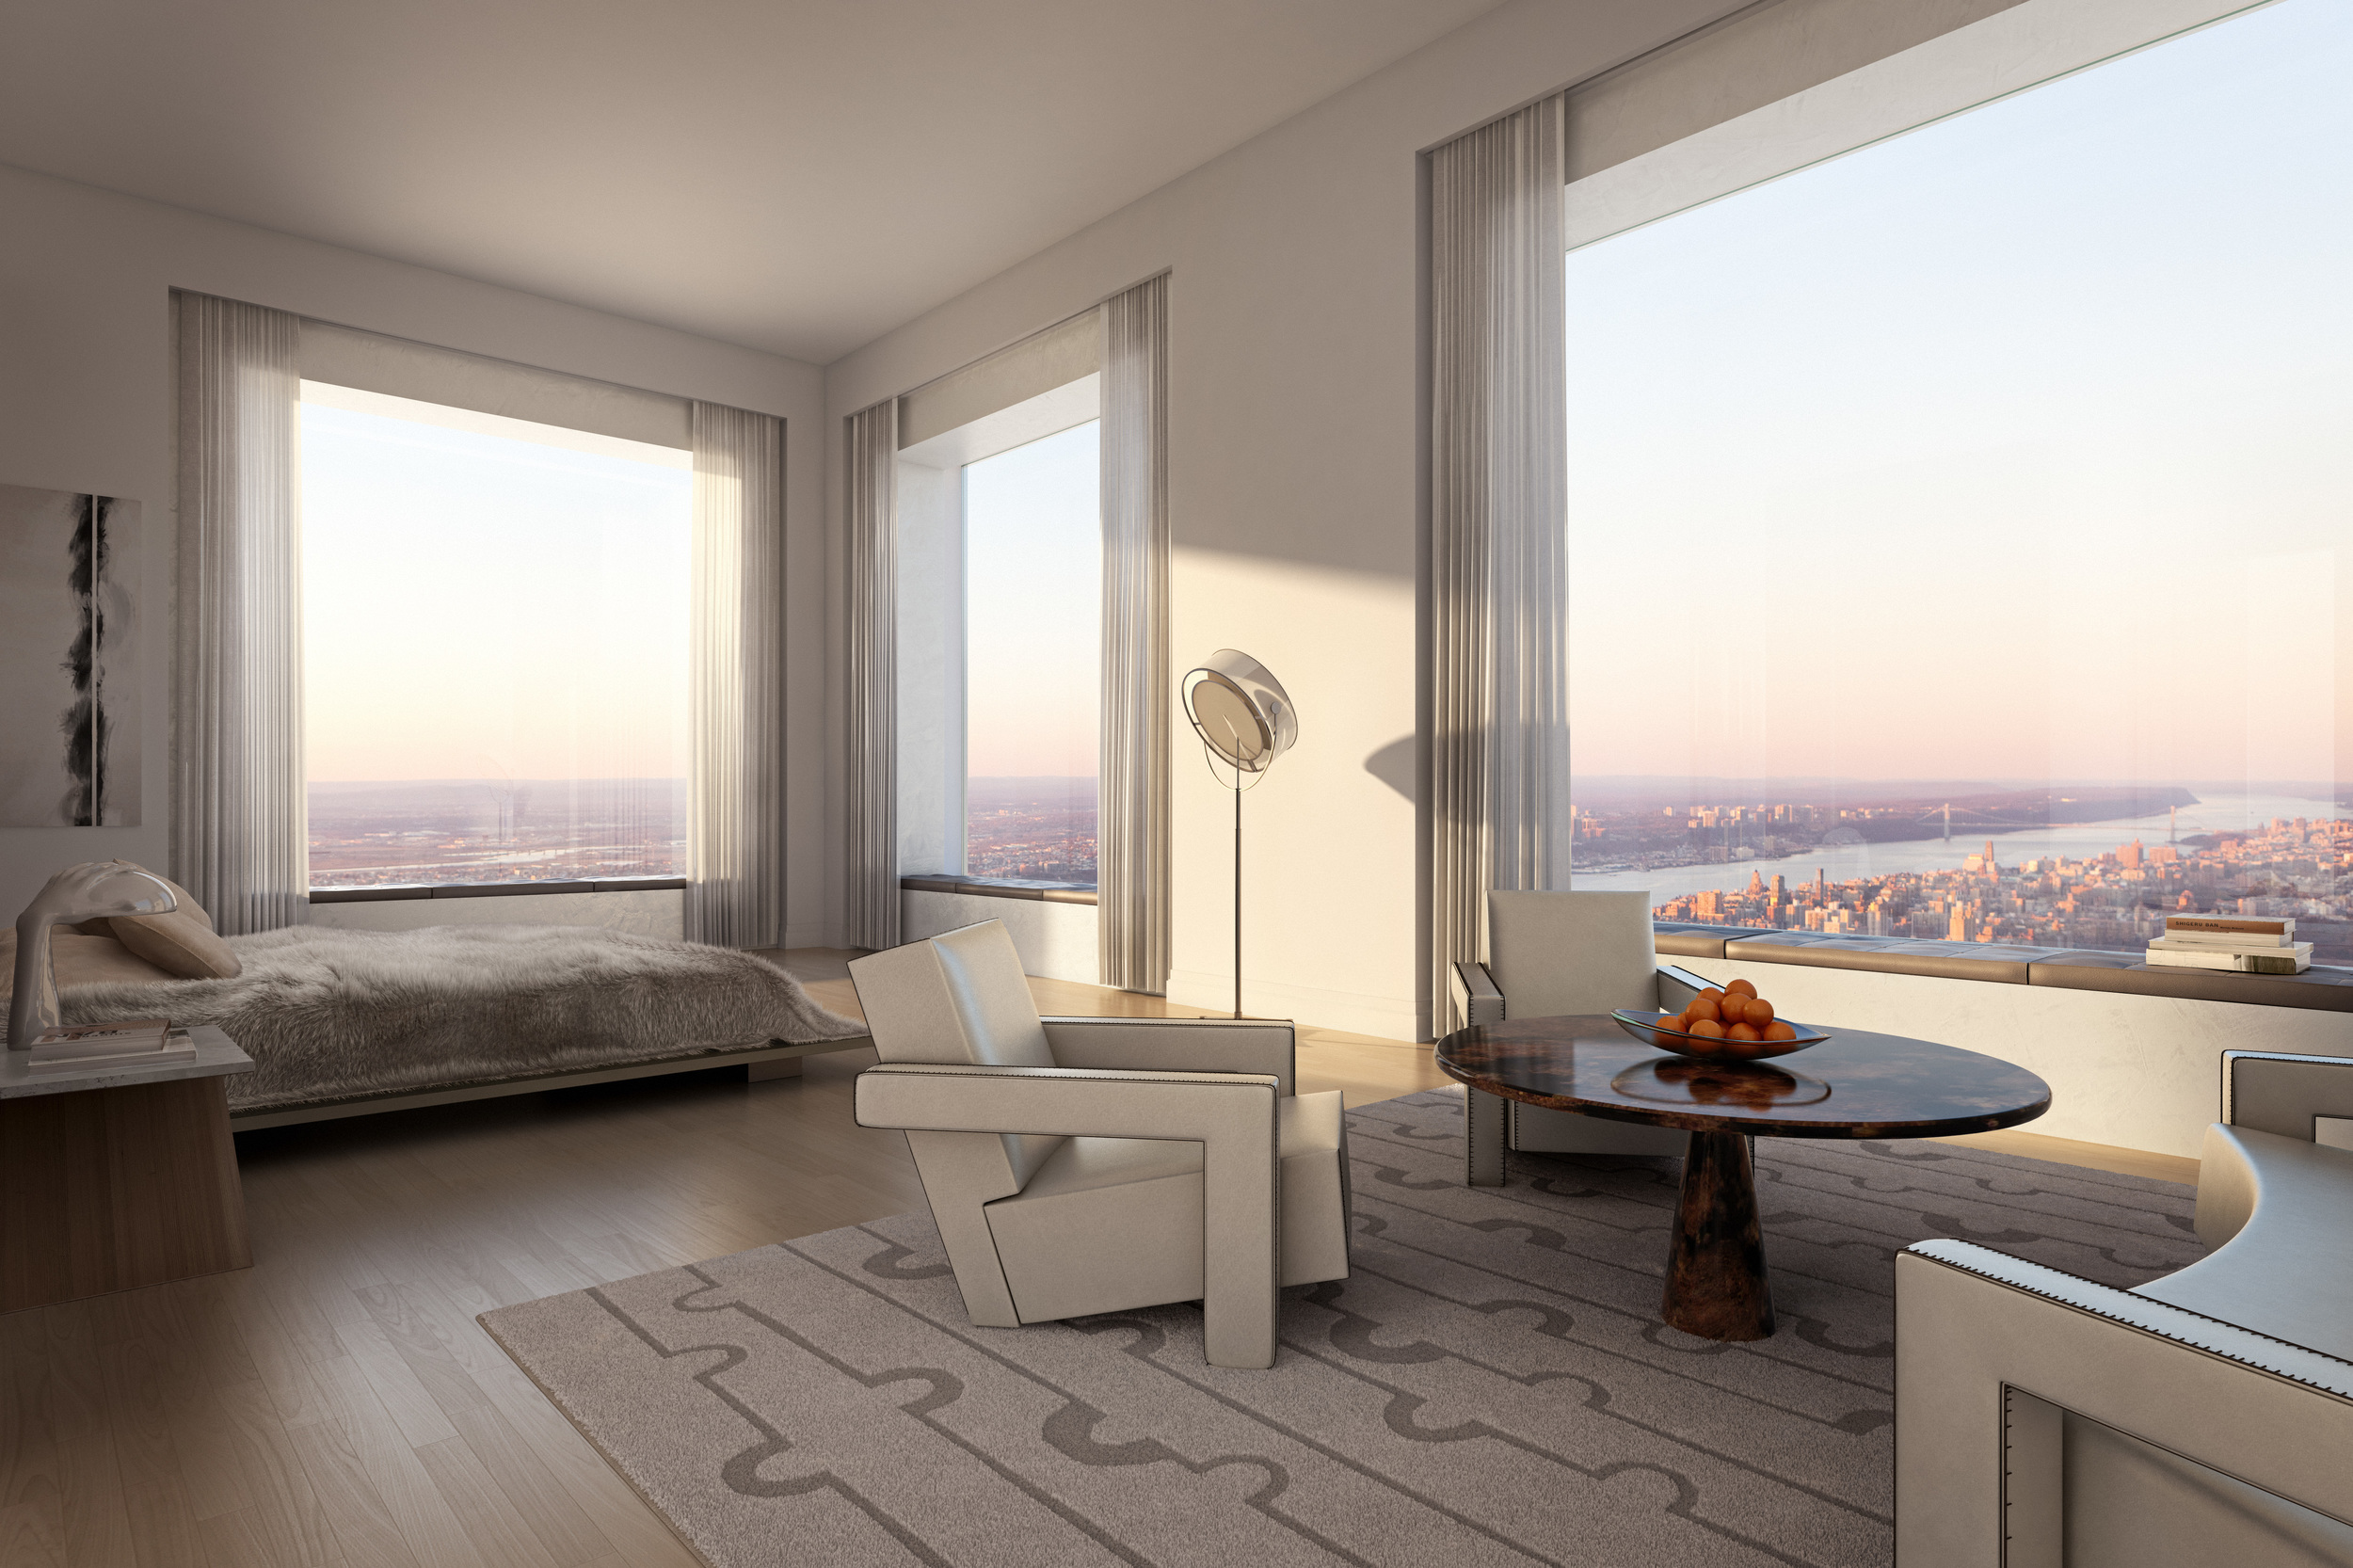 New york apartment building is tallest in the americas - The giant slide apartament ...